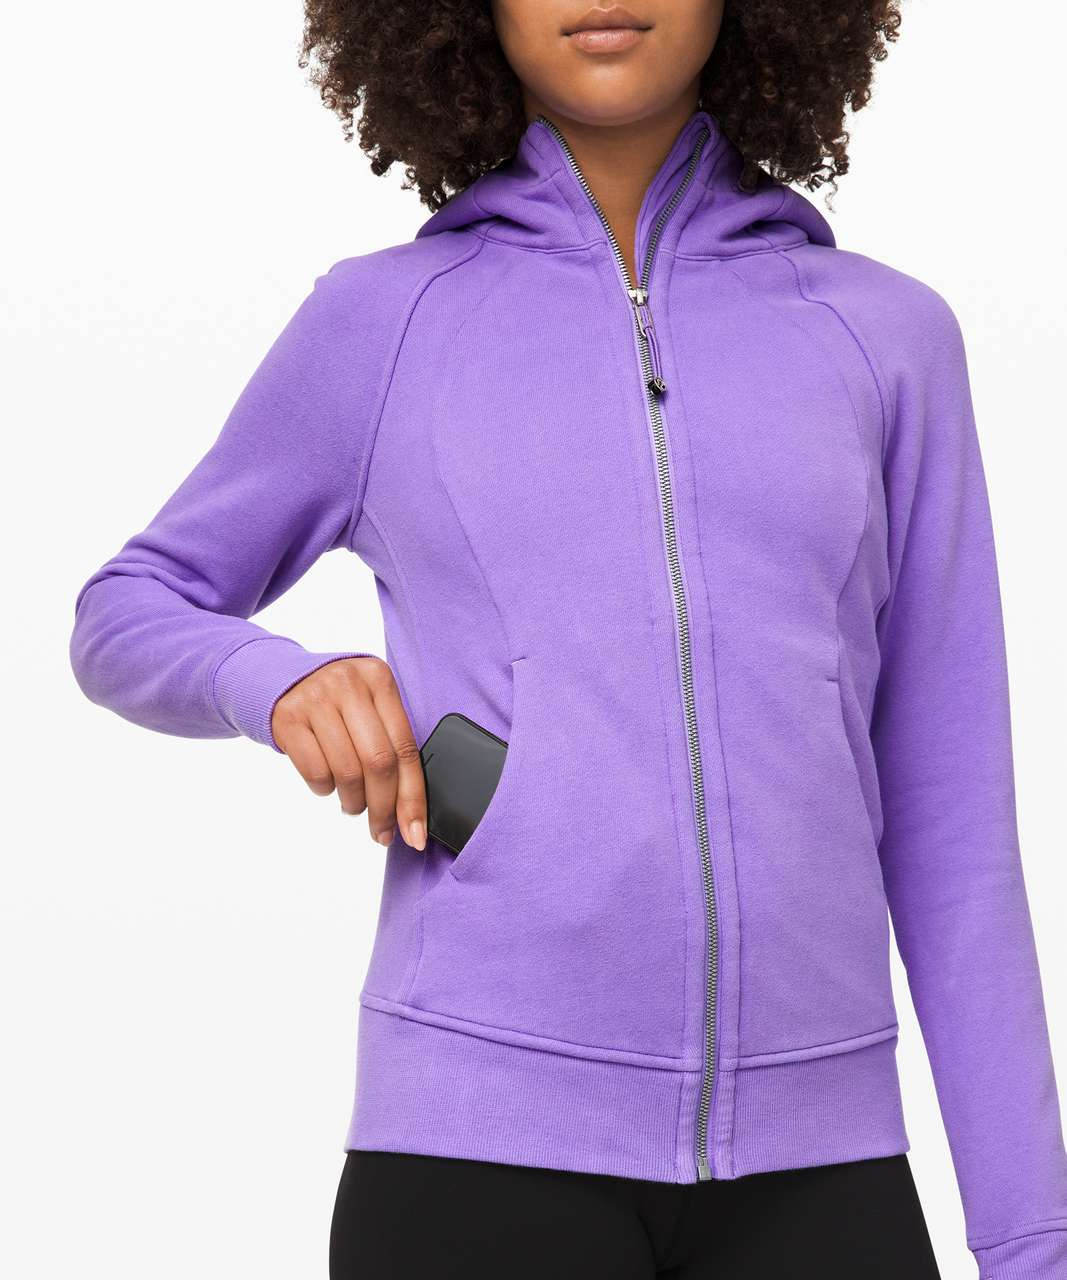 Lululemon Scuba Hoodie *Light Cotton Fleece - Mystic Iris